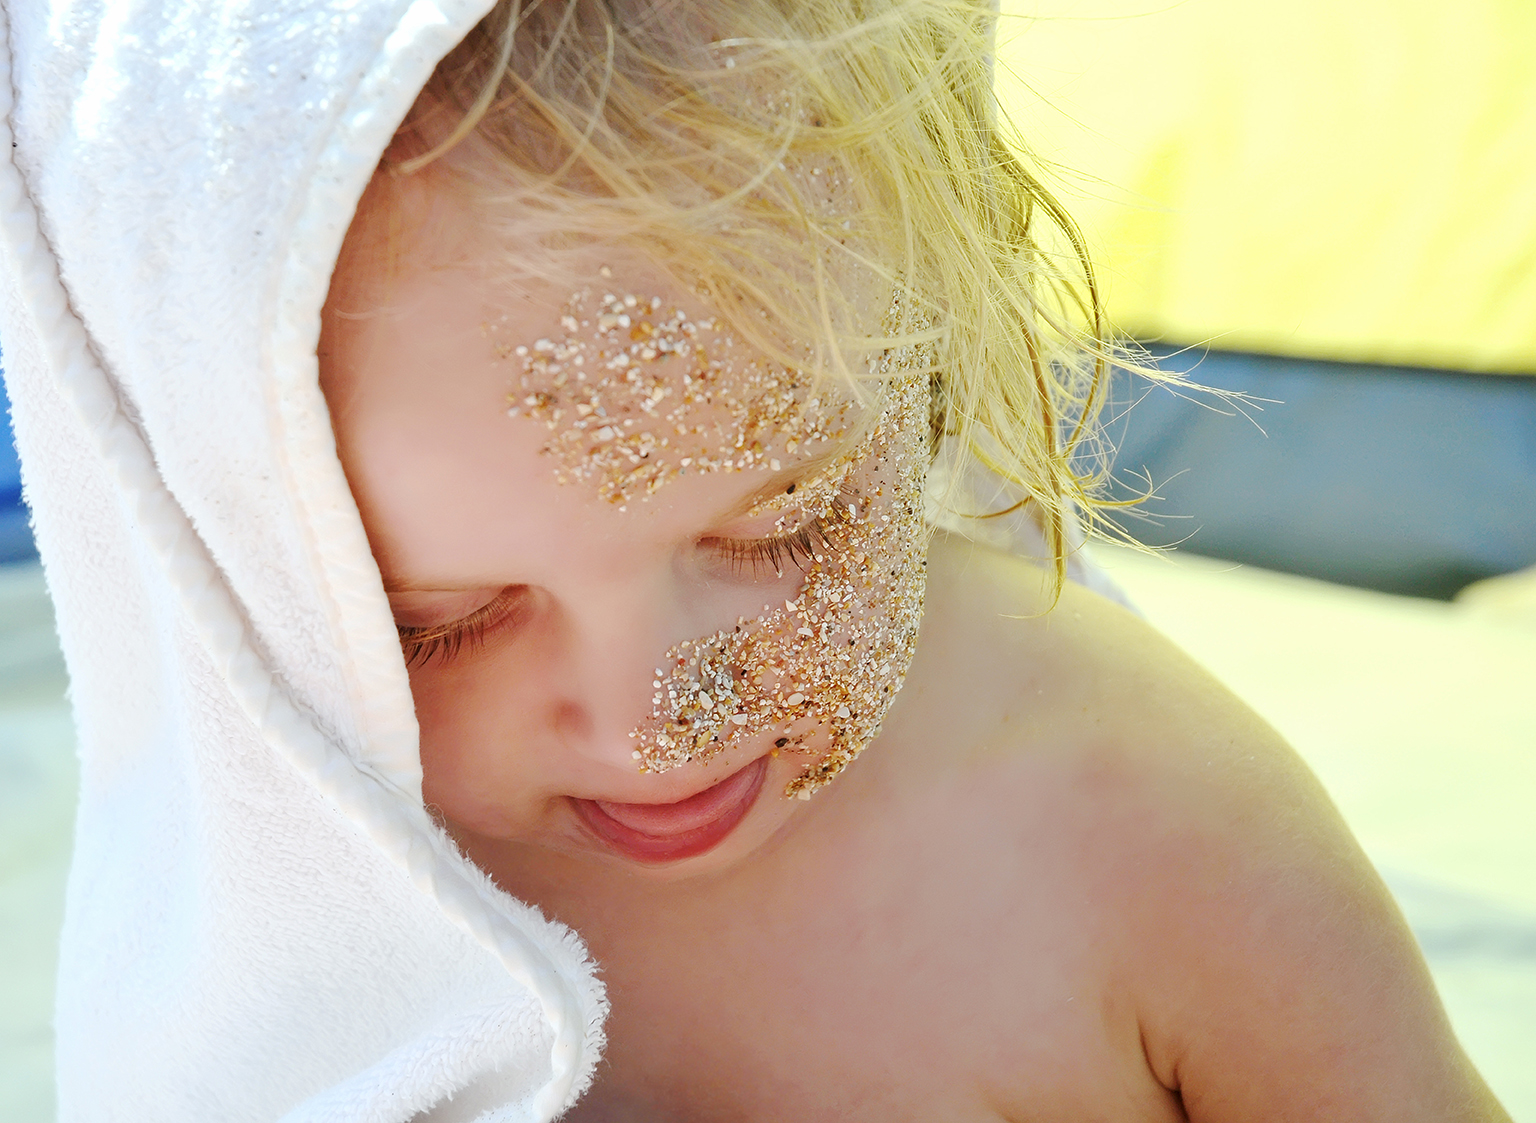 Surf Sand Toddlers Vacation Tips And Advice